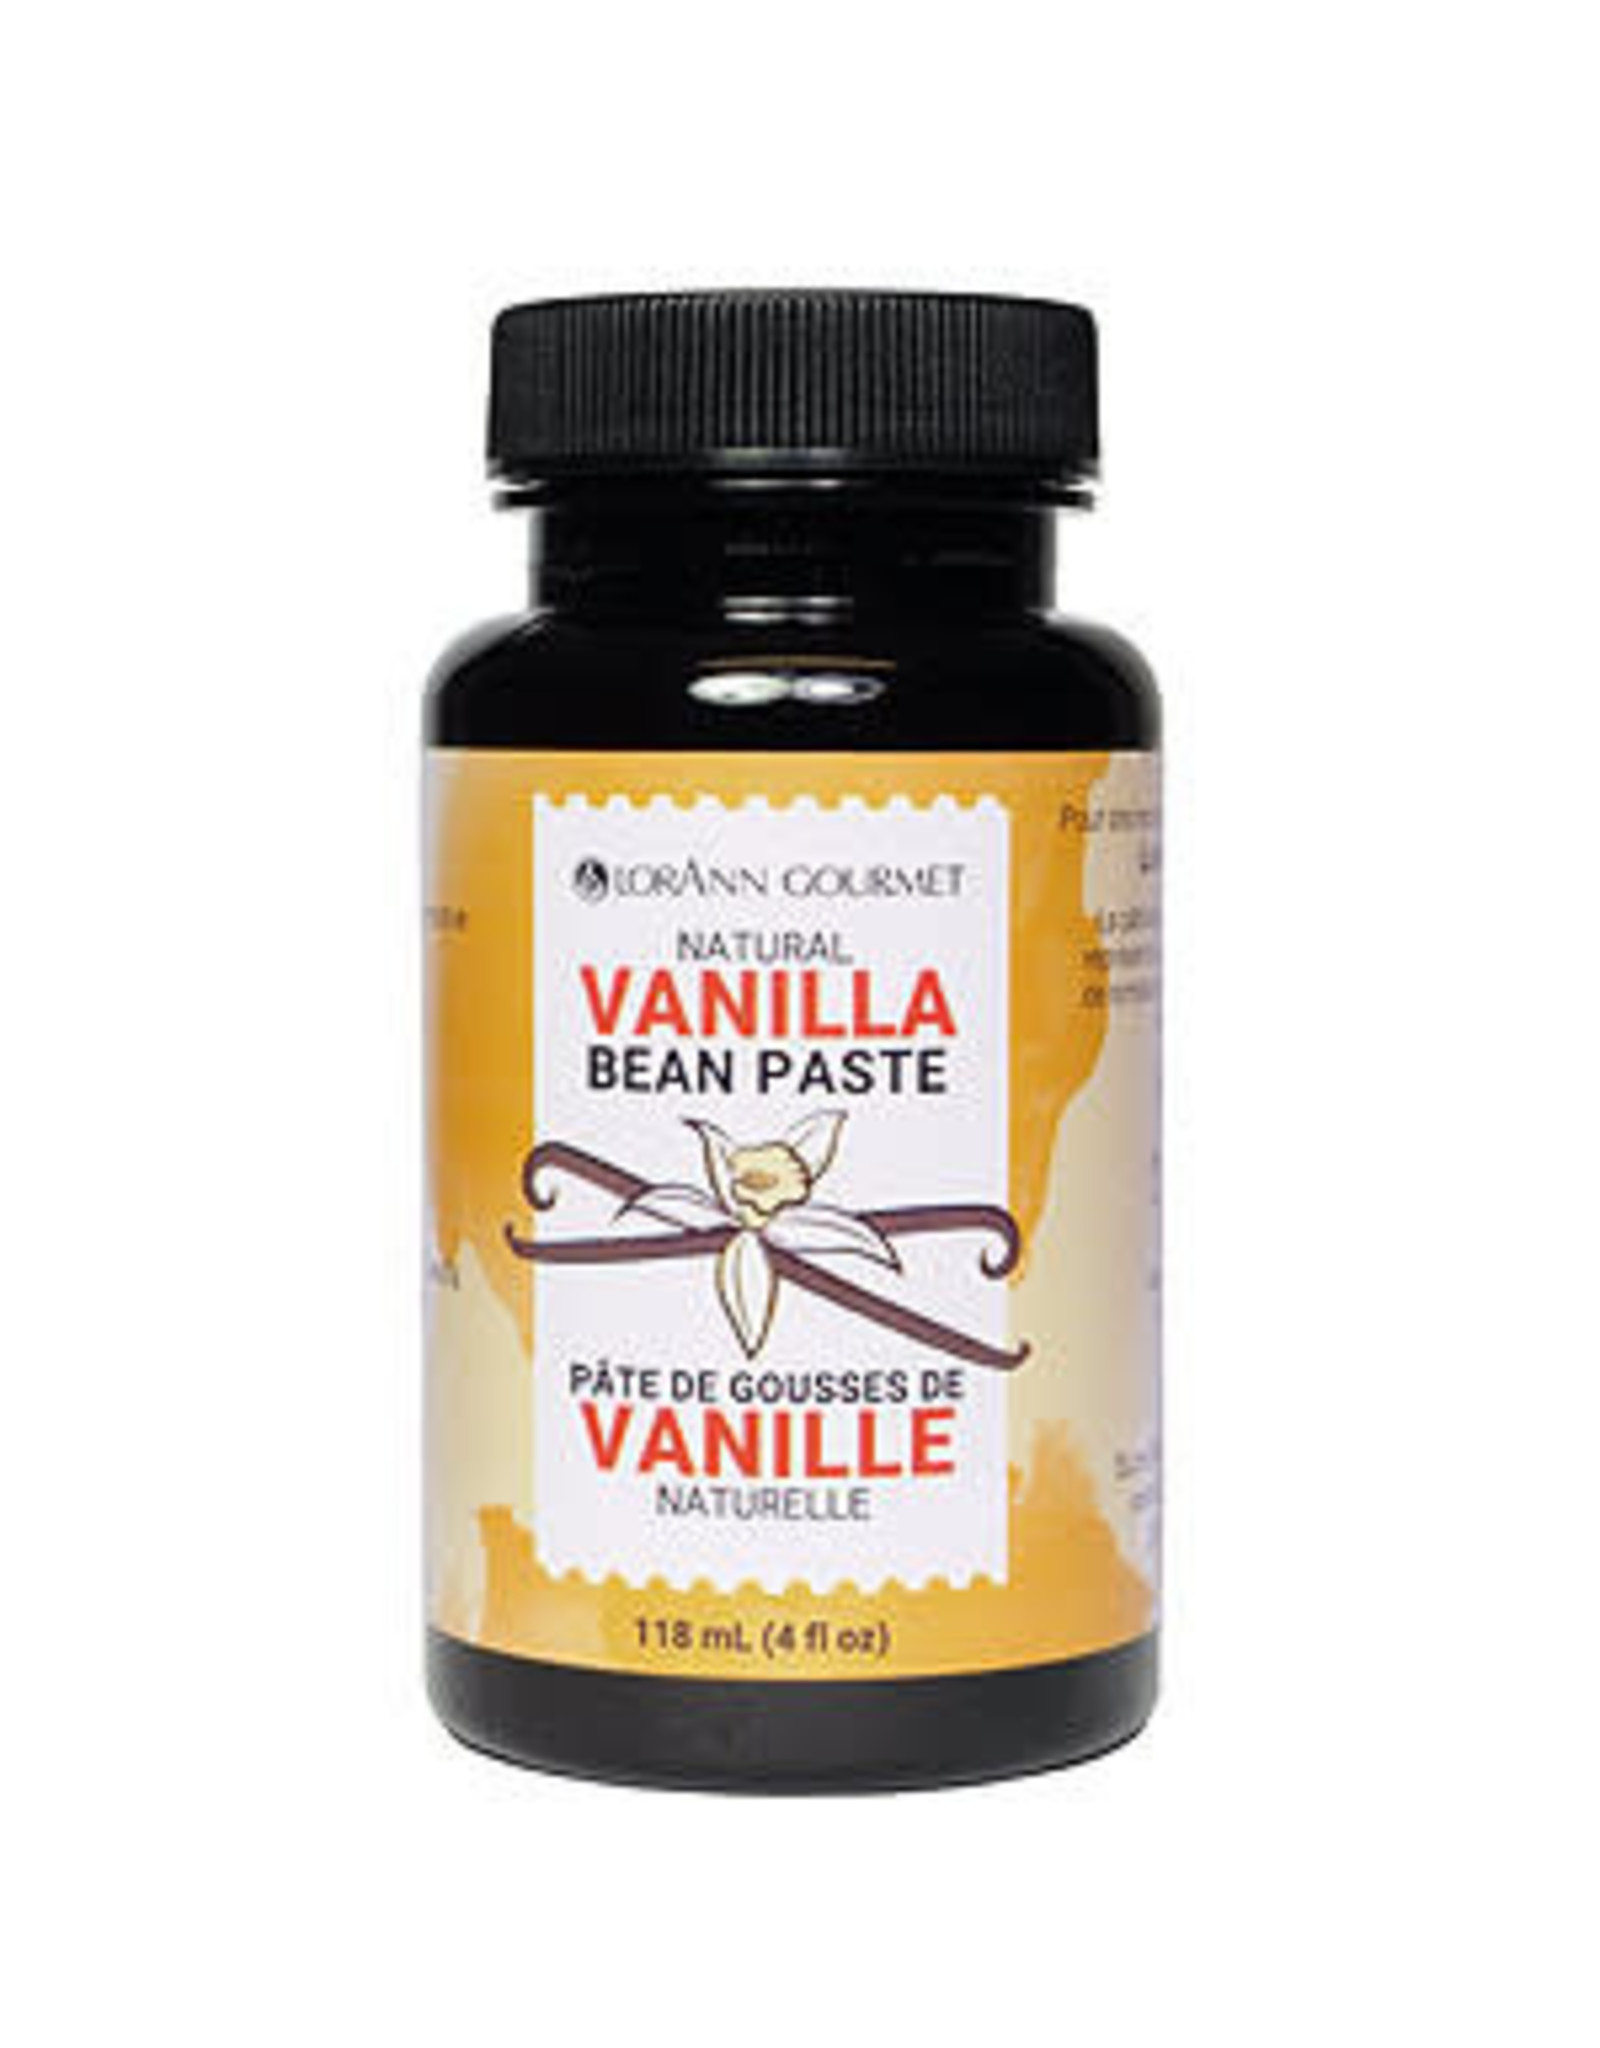 LorAnn Gourmet LorAnn's Pure Vanilla Bean Paste Blend 4 oz (118mL)